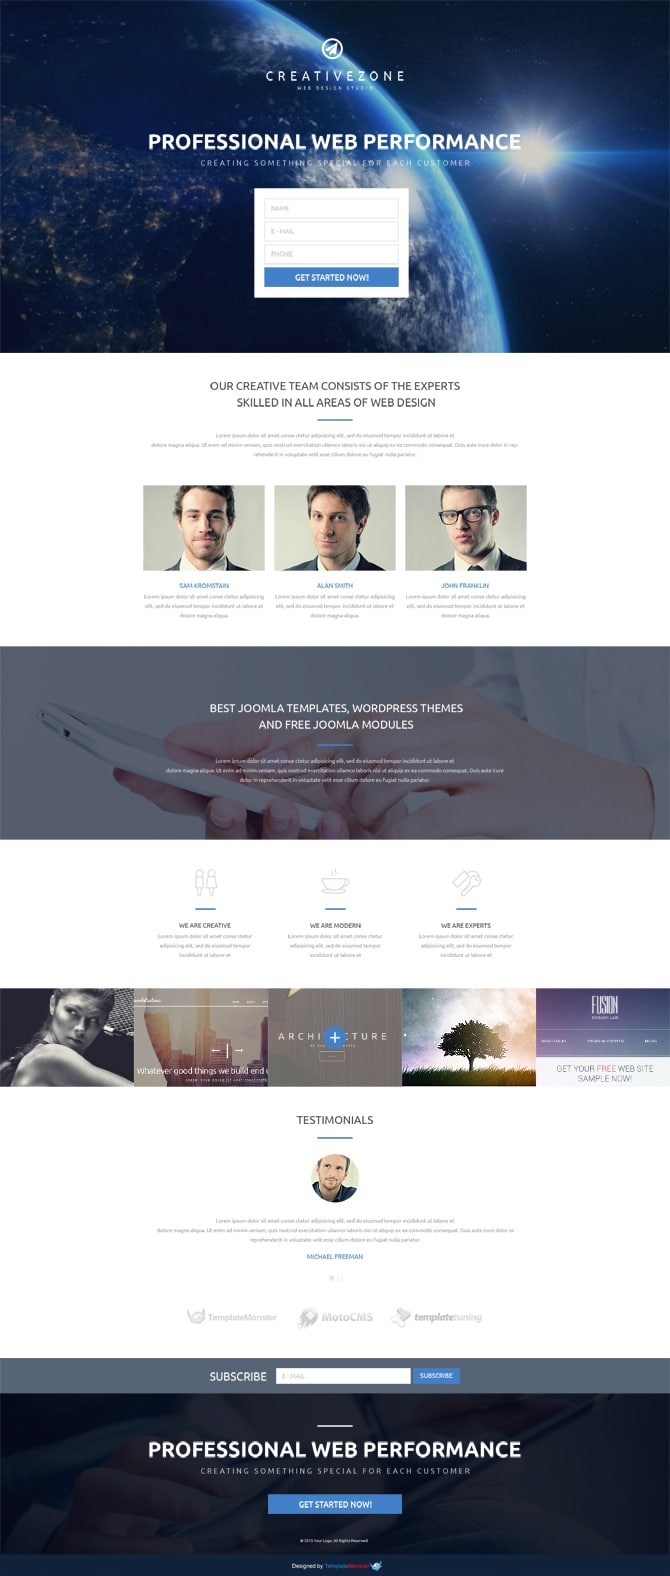 Design-Studio-Free-Landing-Page-Template-PSD